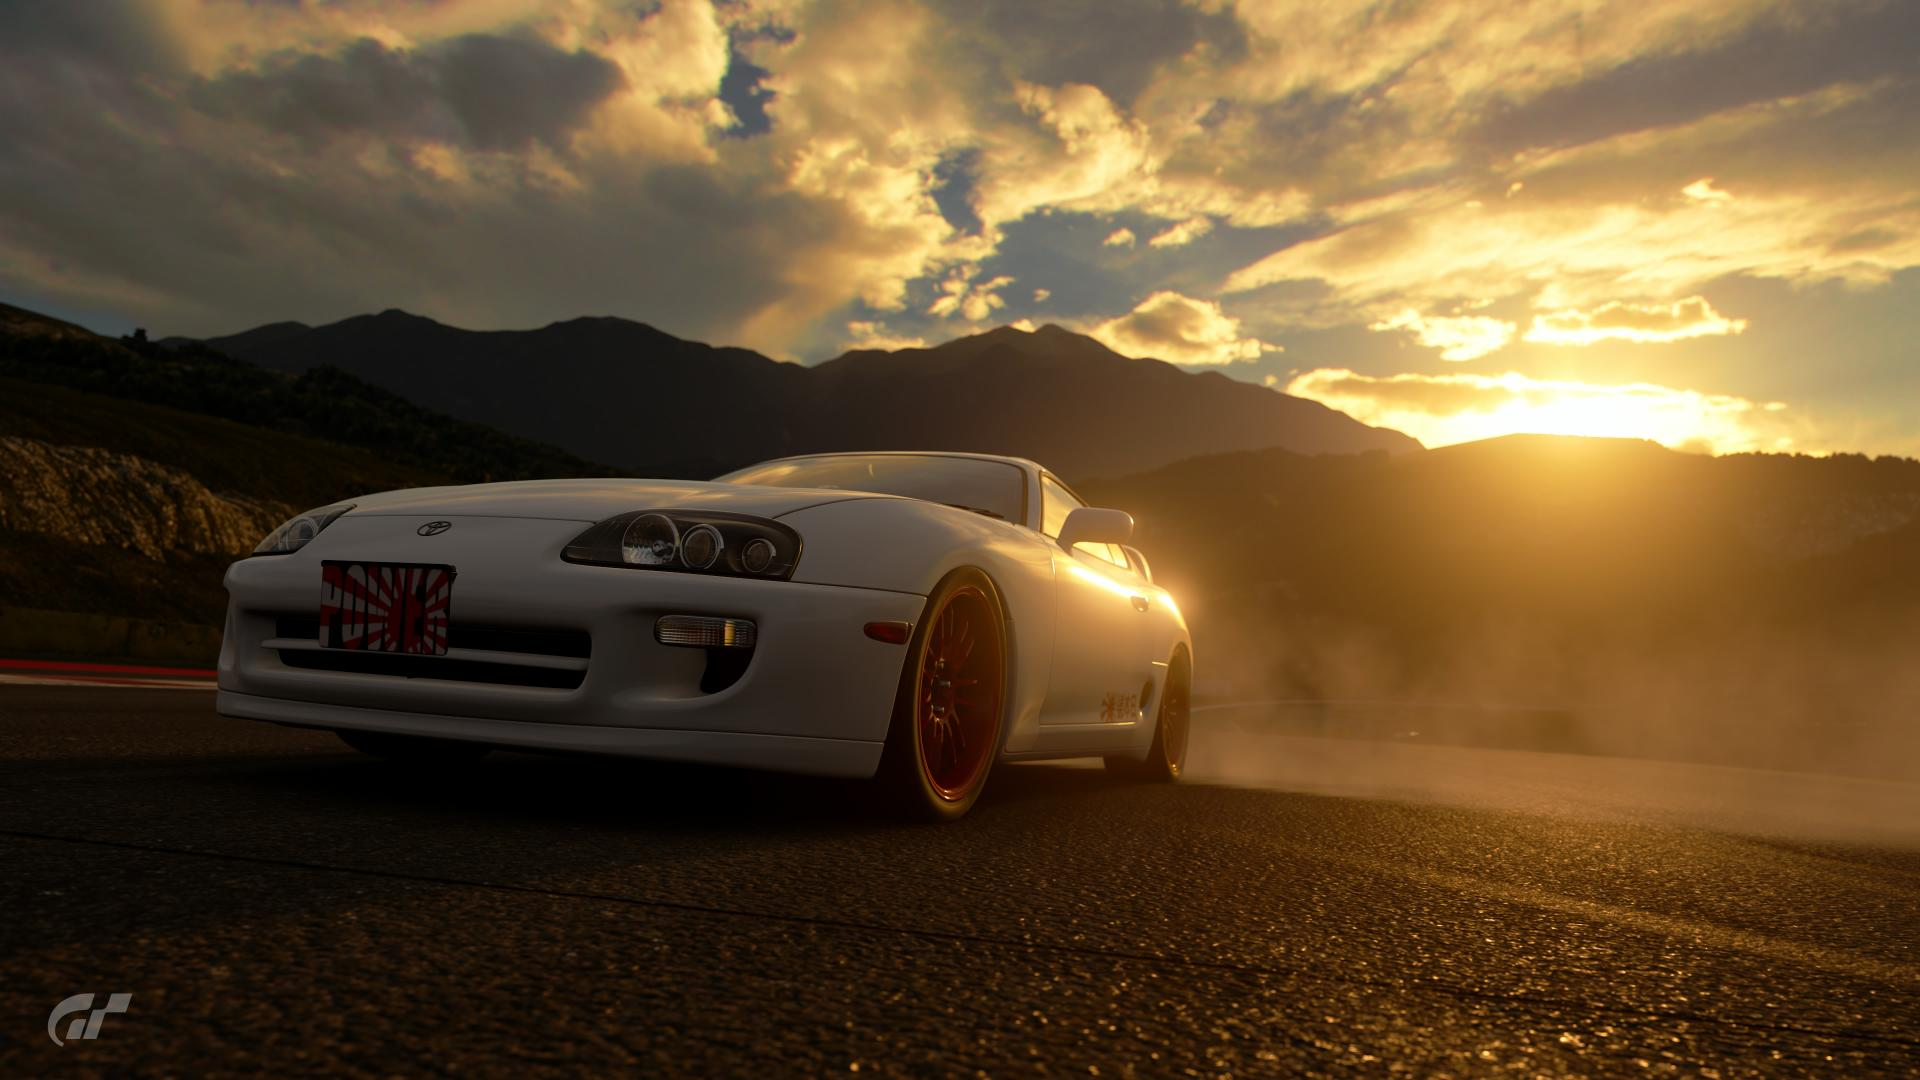 Supra doing Burnout - Race Photos by LuMa0191 | Community